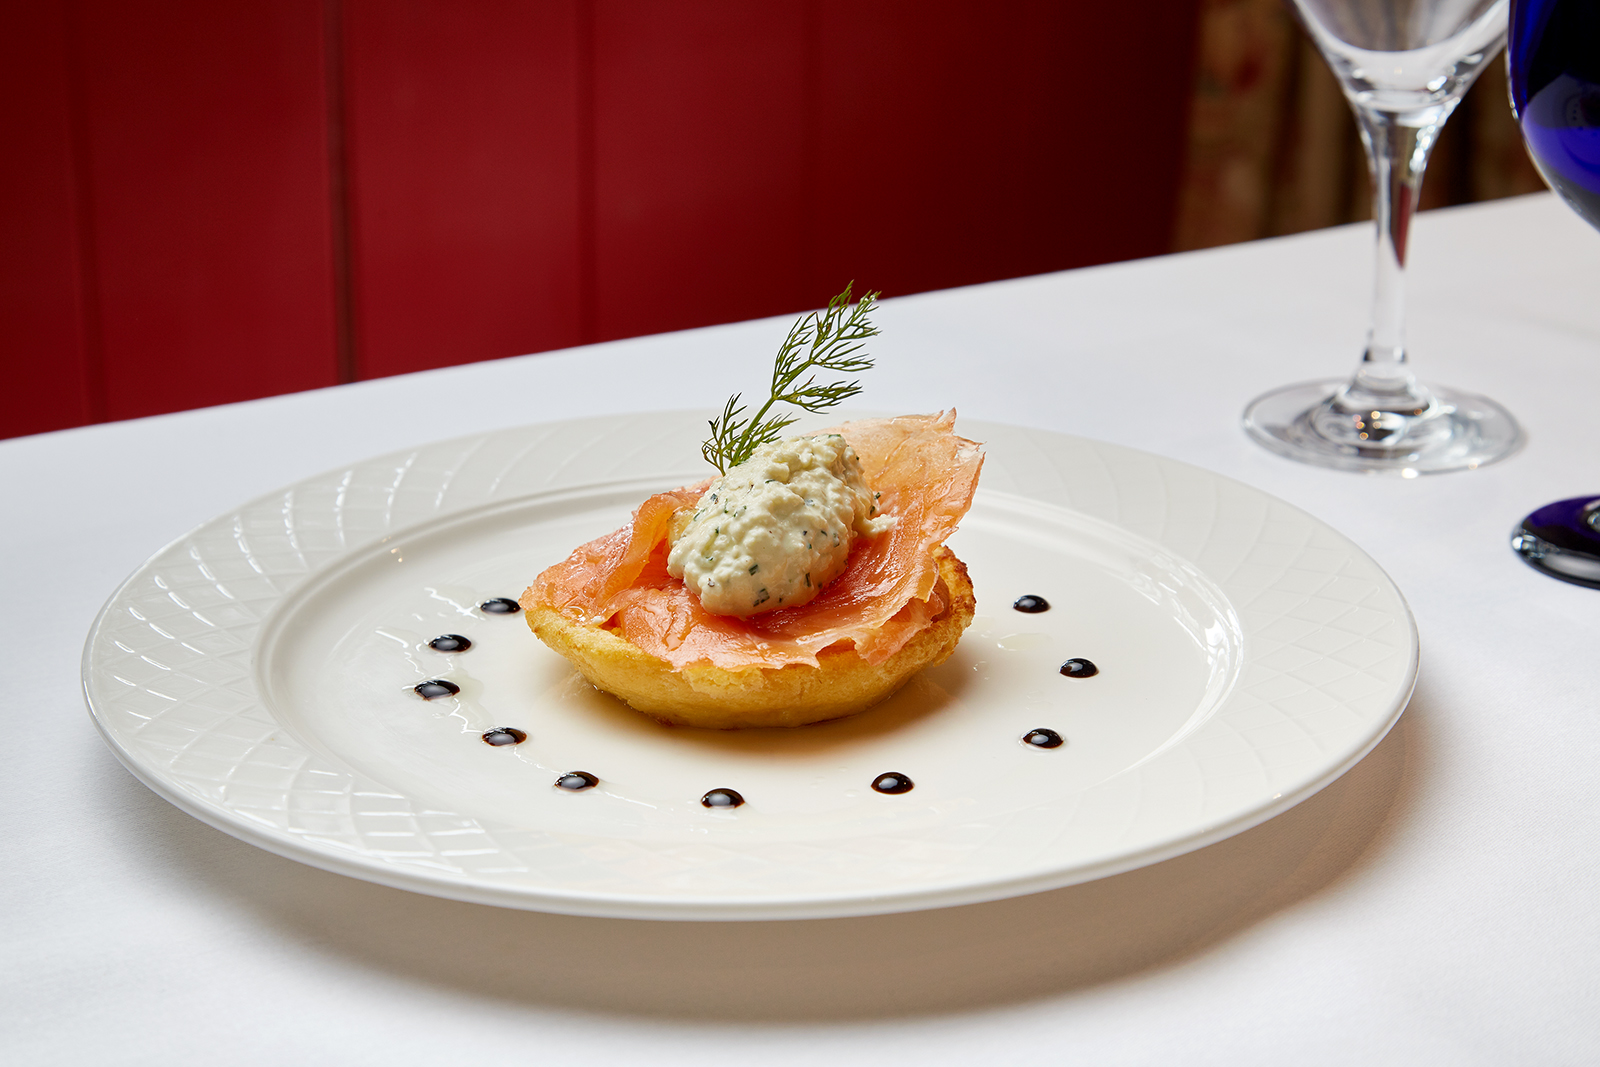 SE - Smoked Salmon, potato pancake, home-made cottage cheese (1).jpg